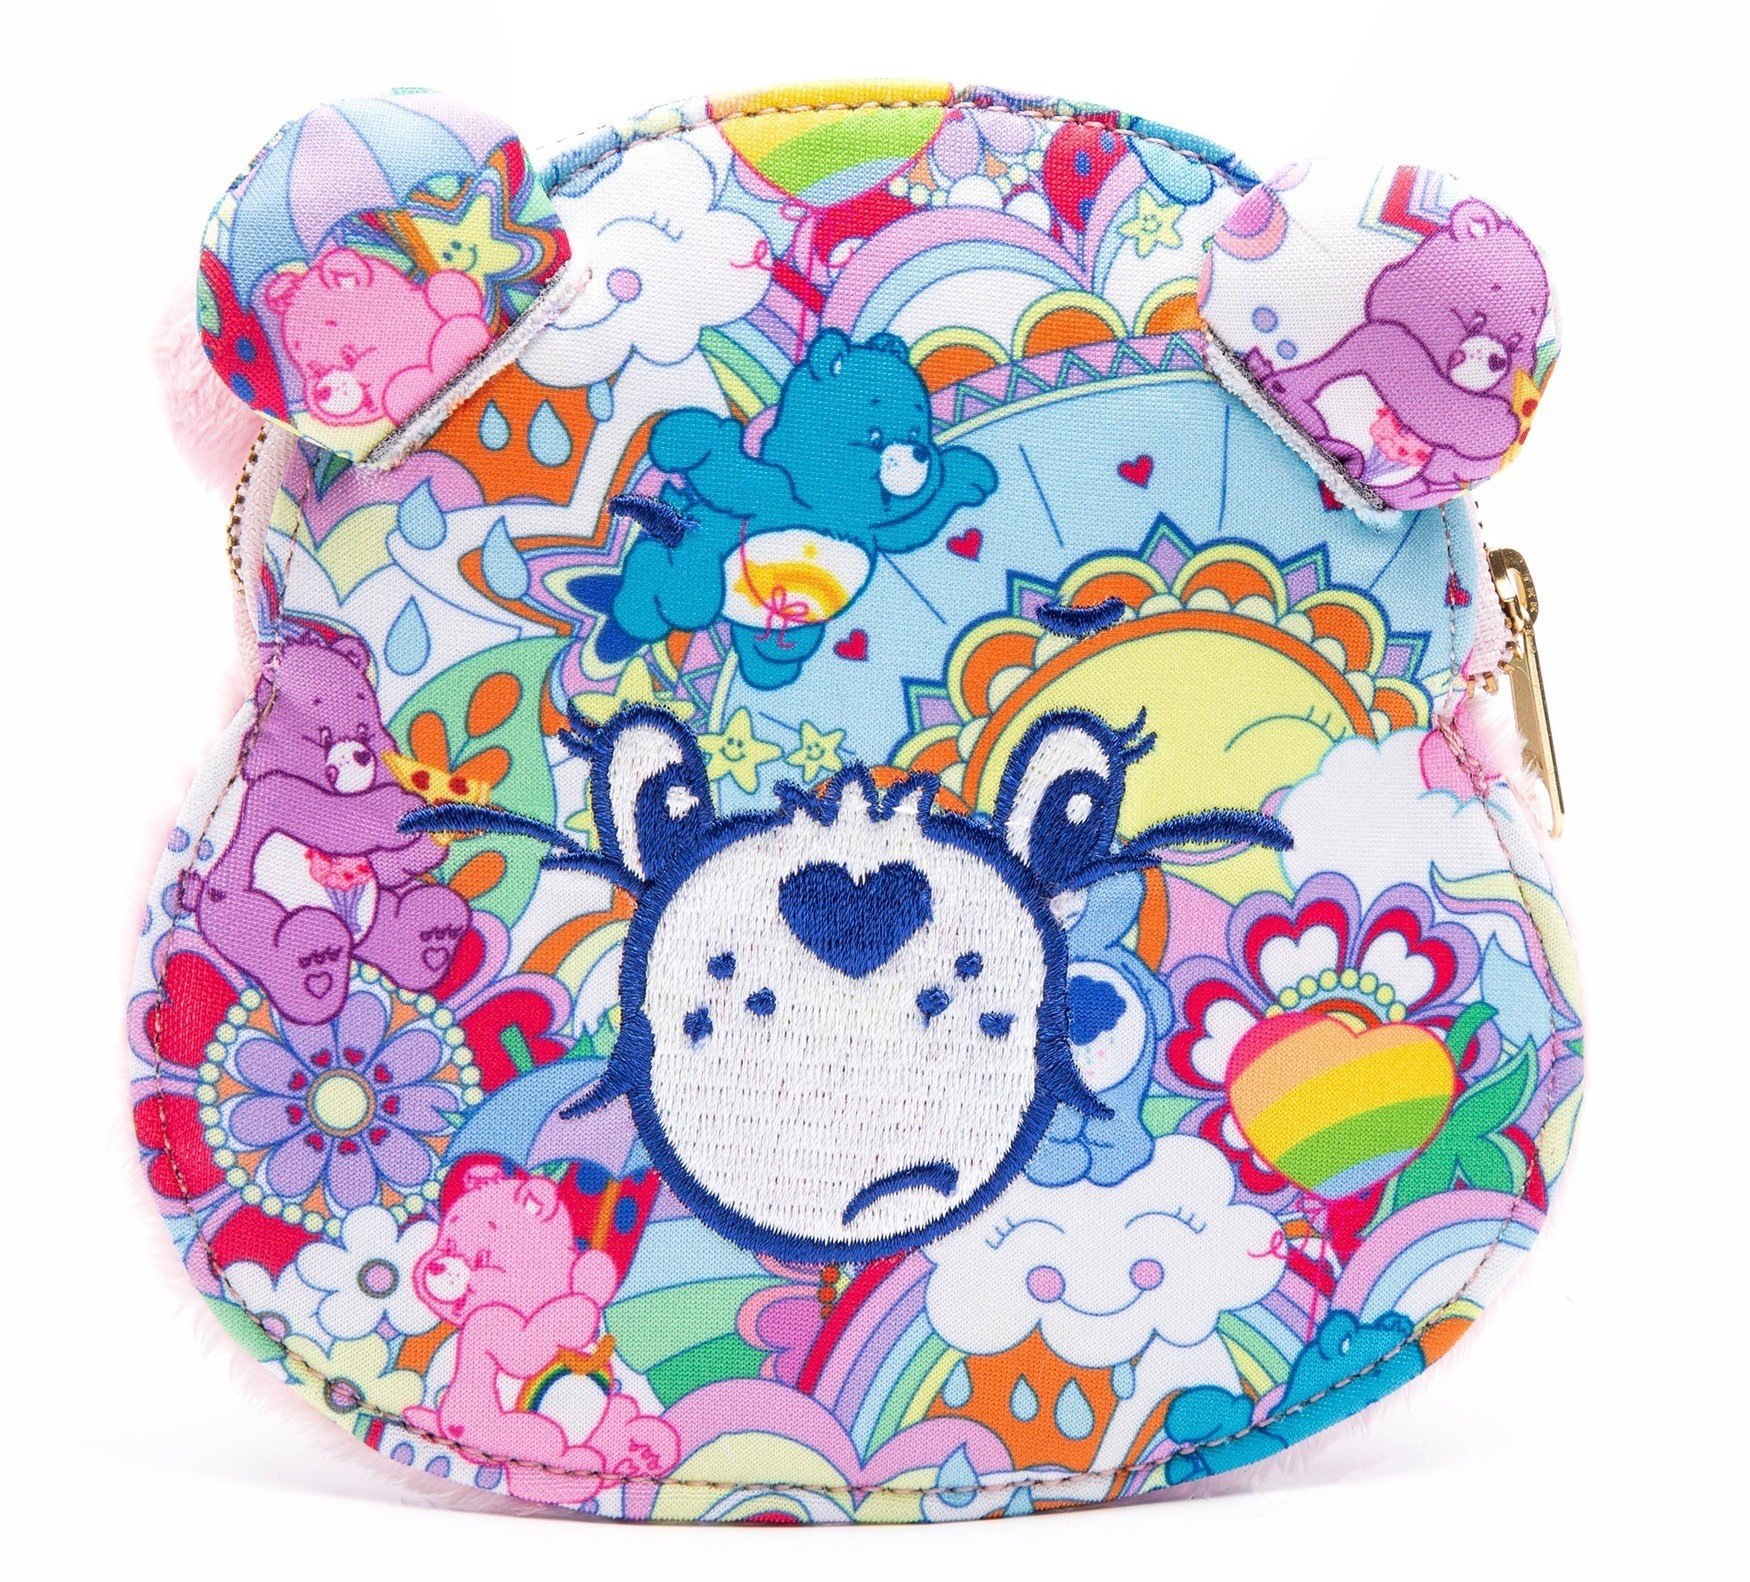 Irregular Choice Care Bears collection includes outrageous furry shoes 22